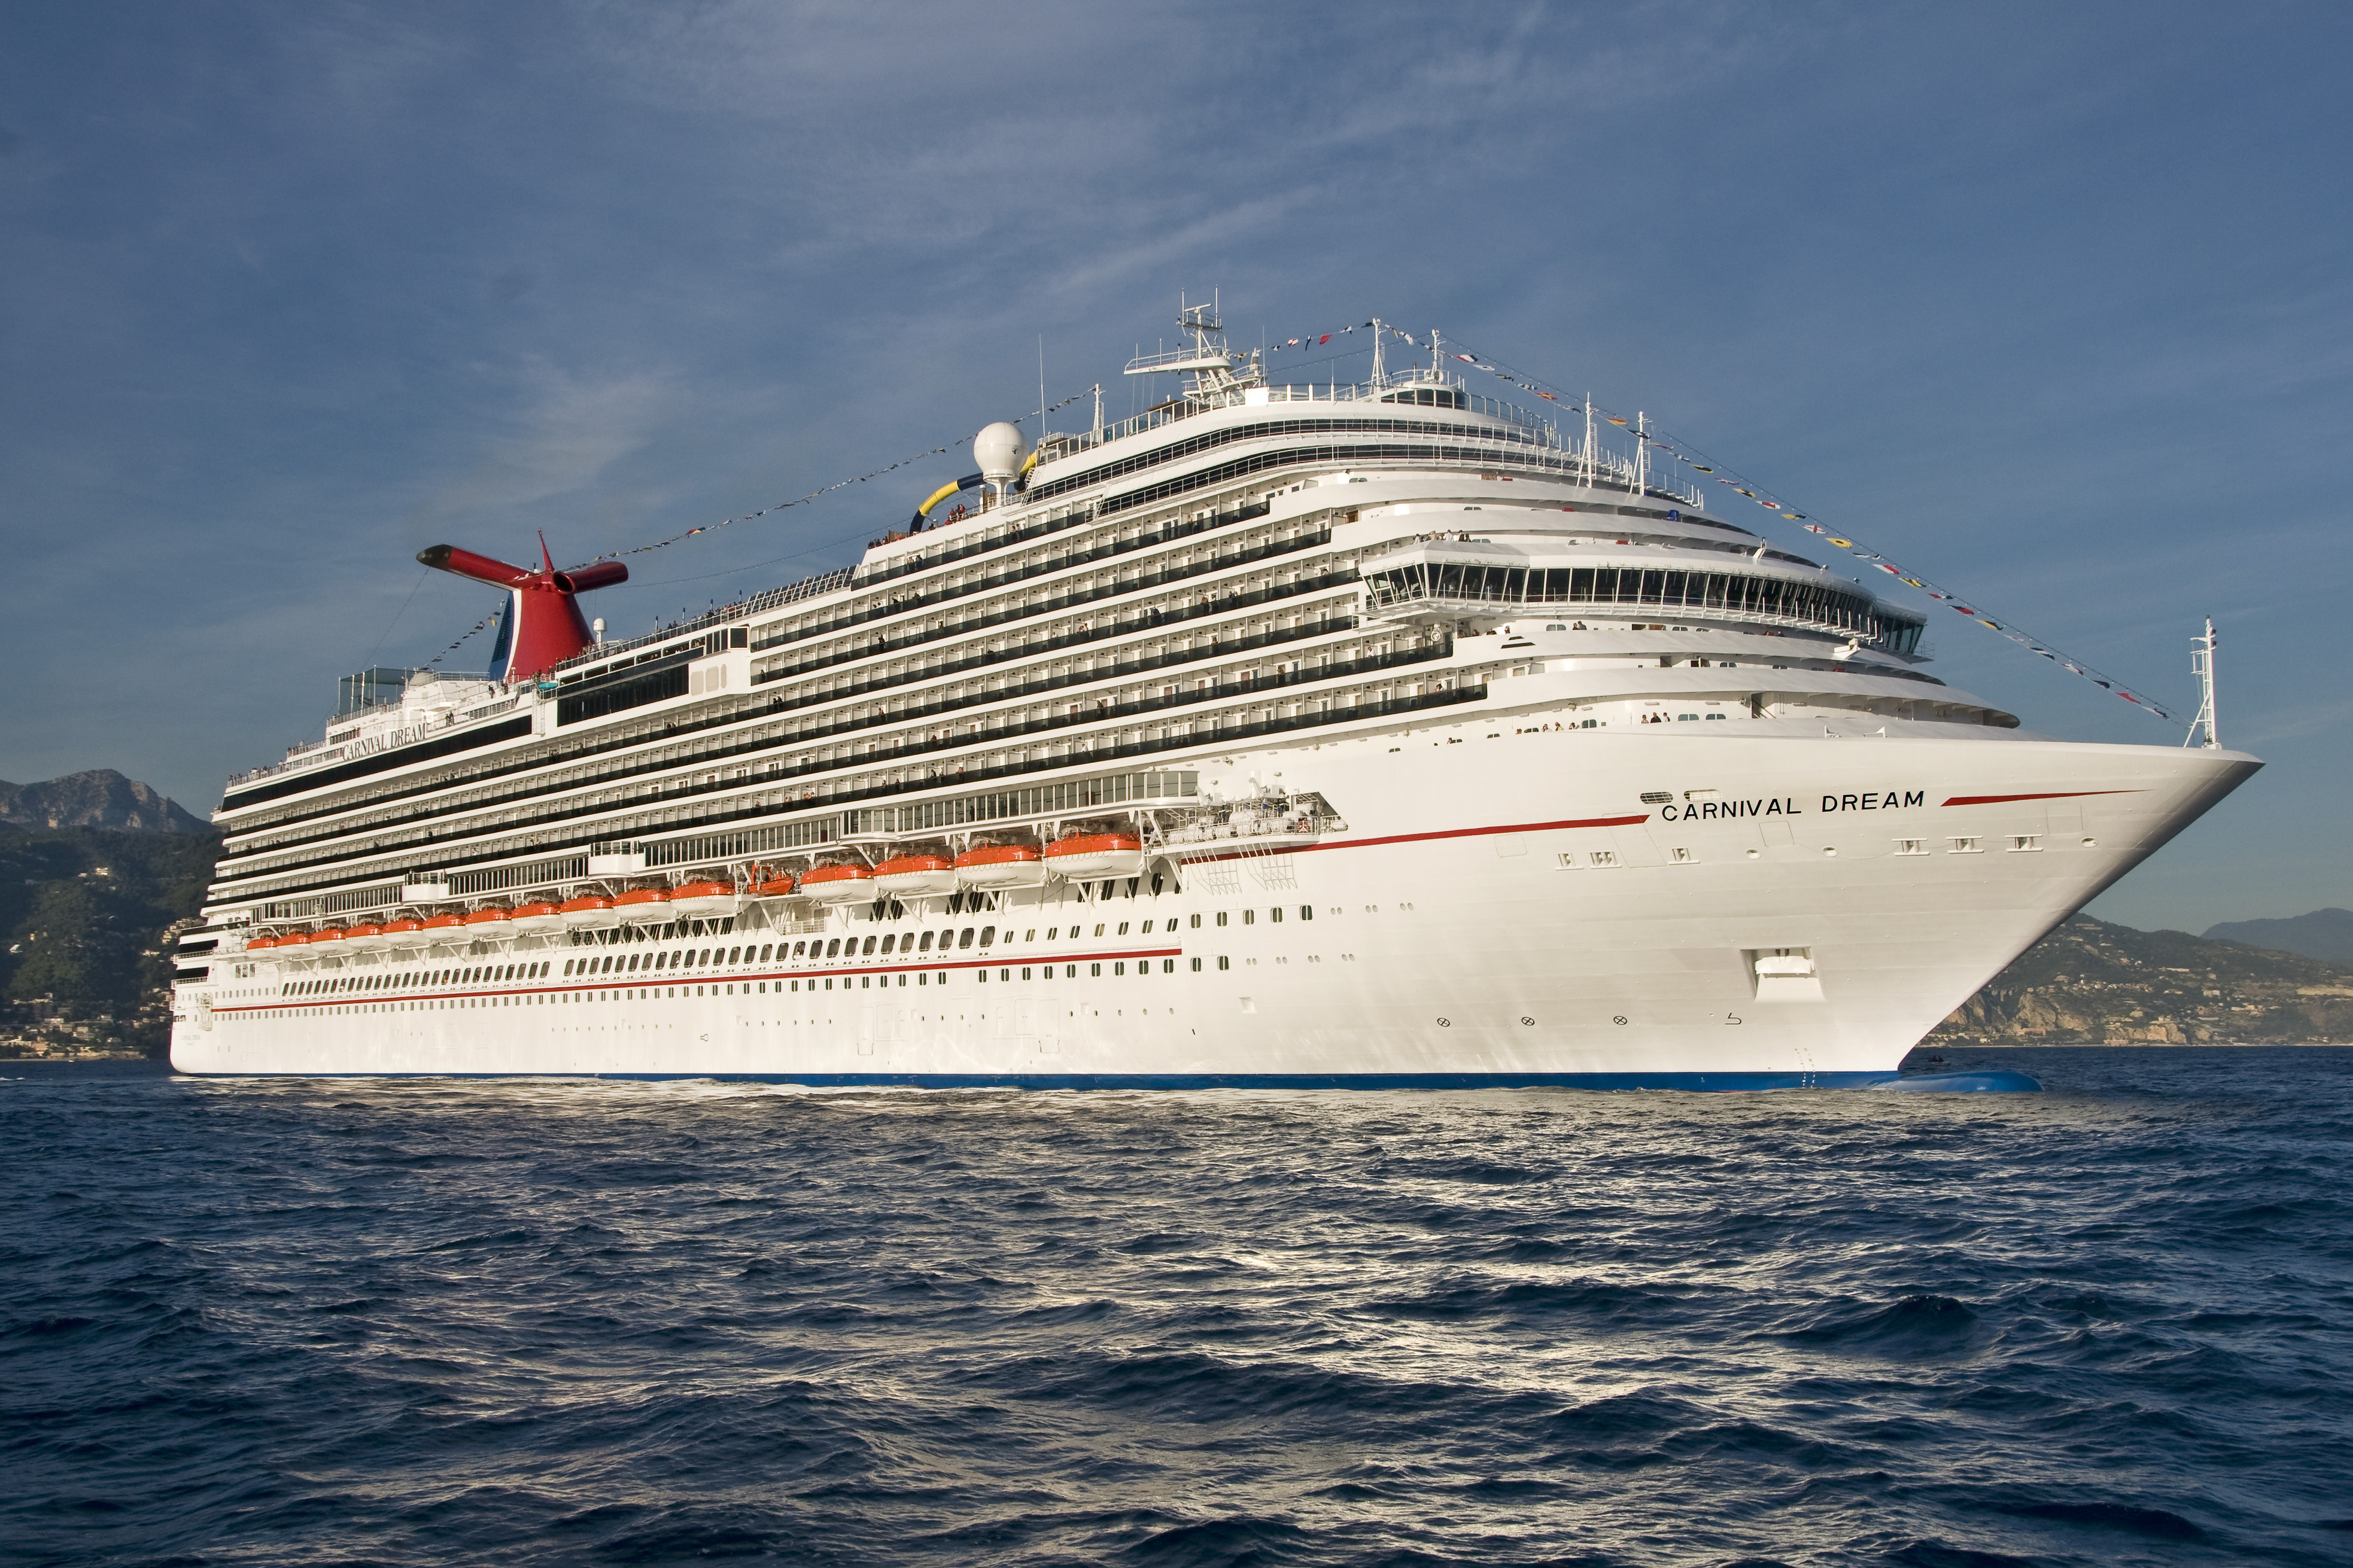 Carnival Dream, Carnival Valor to Kick Off New Four- and Five-Day Mexico Cruise Programs From Galveston and New Orleans, Respectively